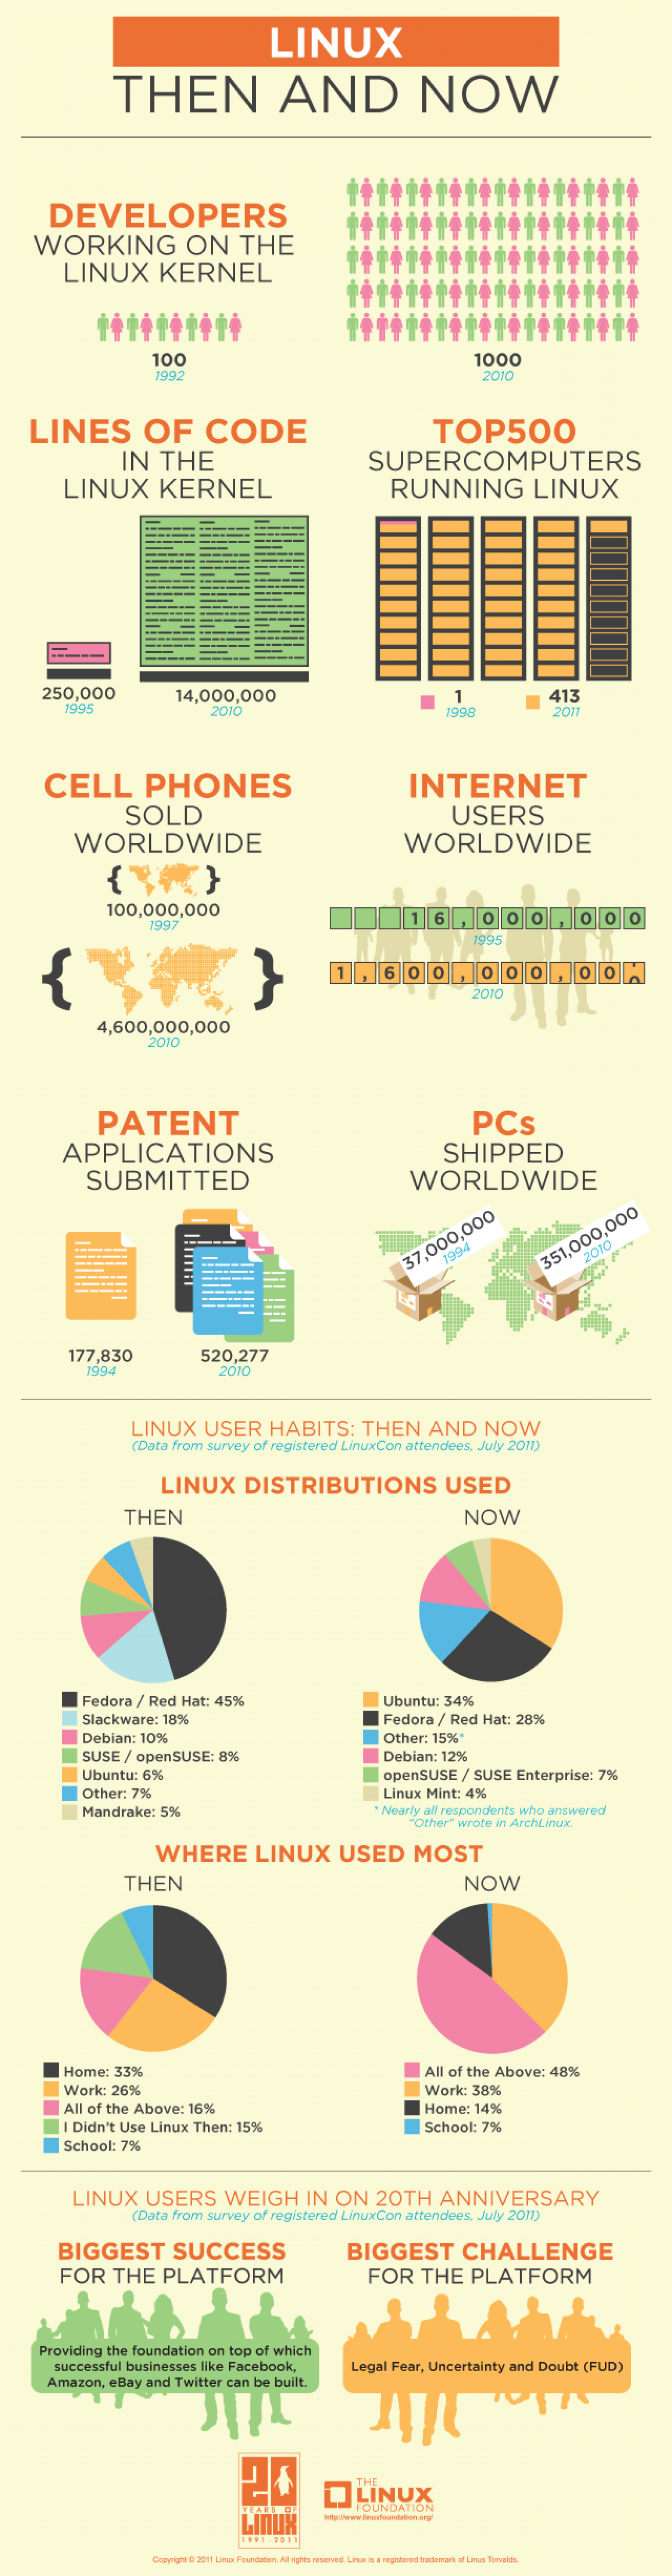 Linux: Then and Now Infographic